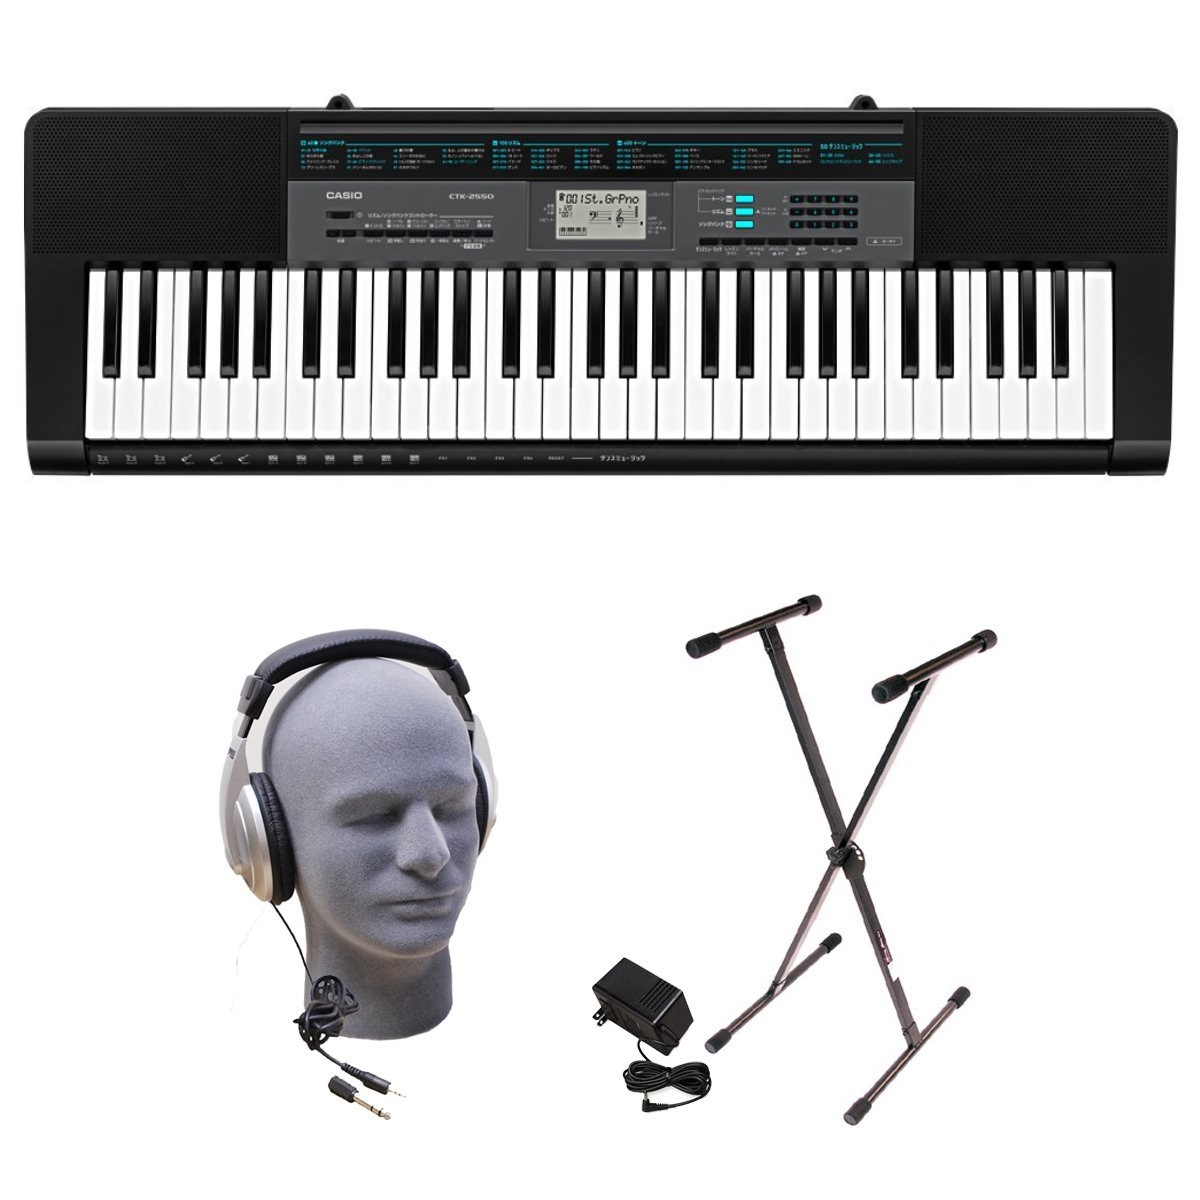 Casio CTK-2550 PPK 61-Key Premium Keyboard Pack with Stand, Headphones & Power Supply by Casio